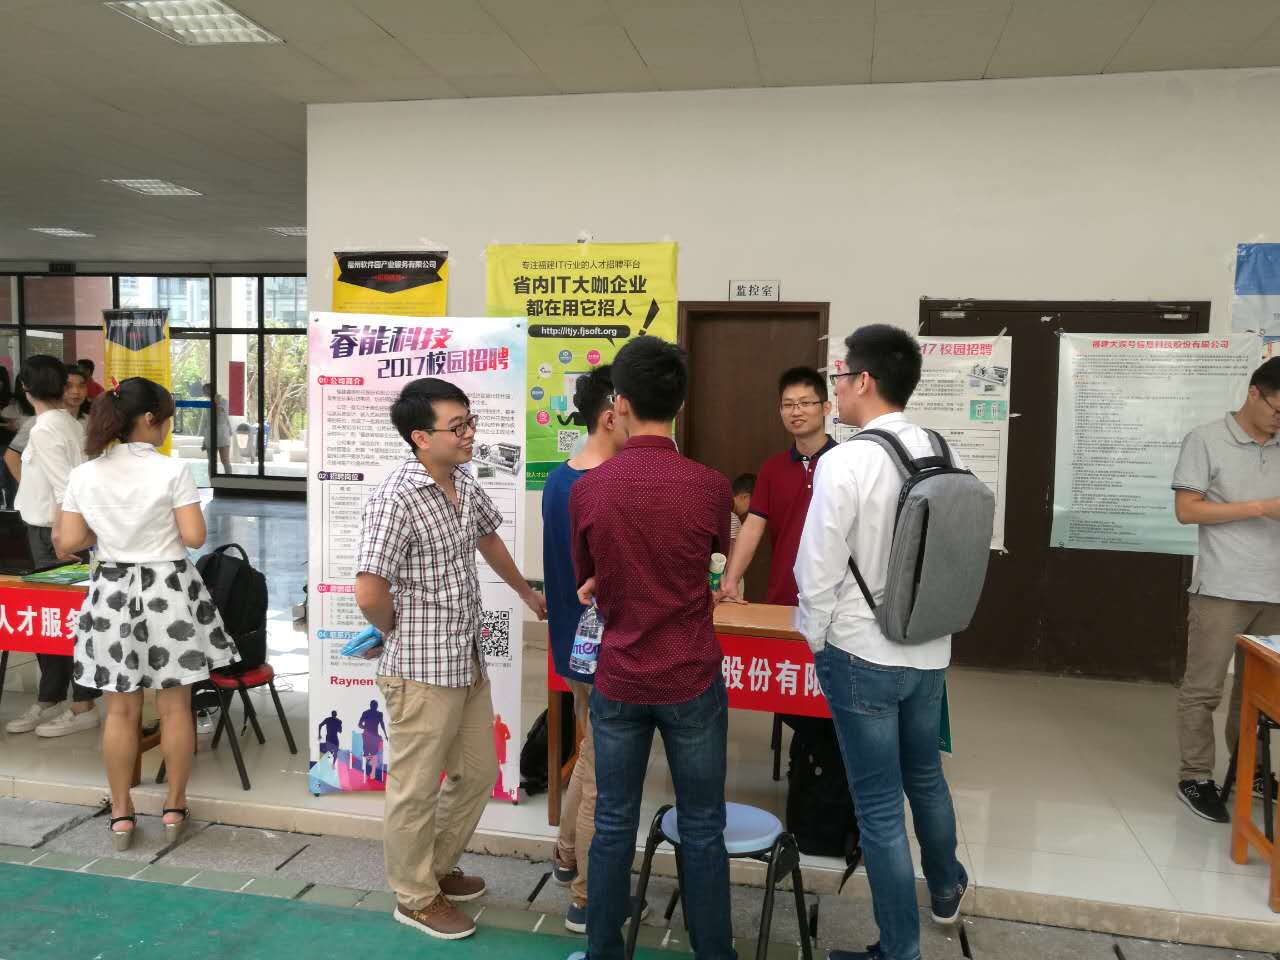 厦门大学国家示范性软件学院 the job fair was welcomed by students and companies by the mode of door to door recruitment which achieves high efficiency docking between the supply and